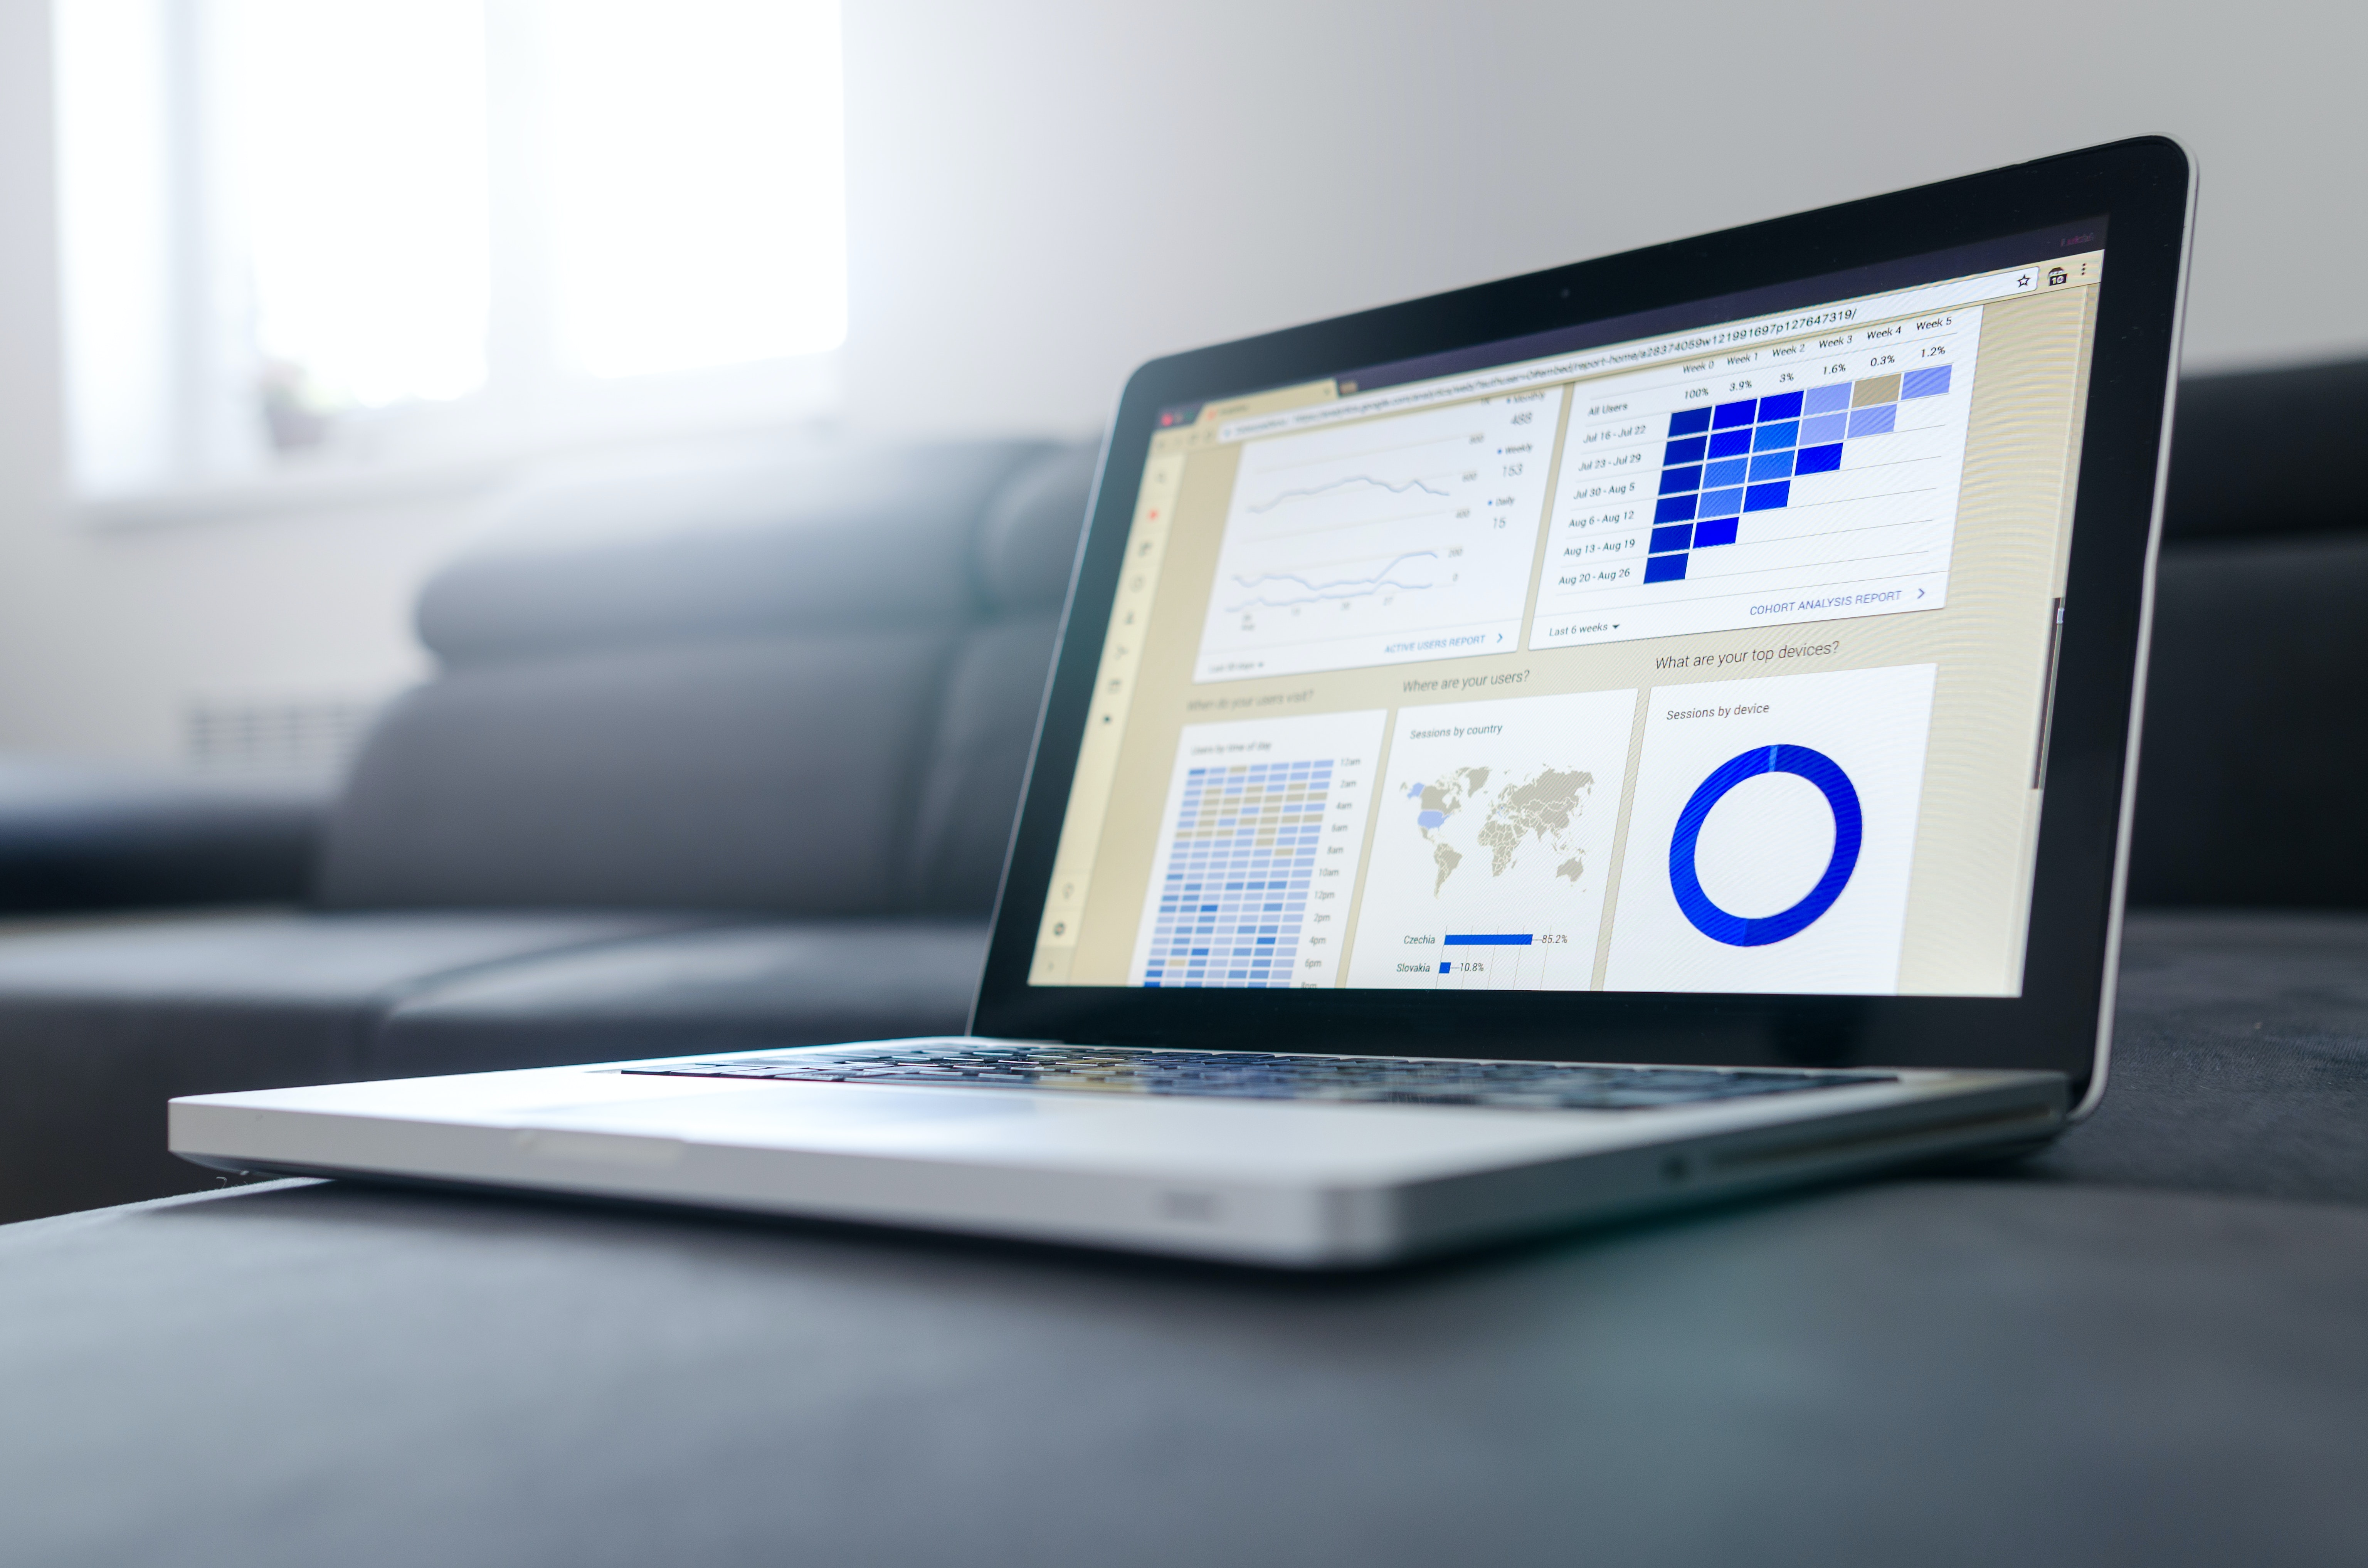 Using Data to Discover Business Opportunities